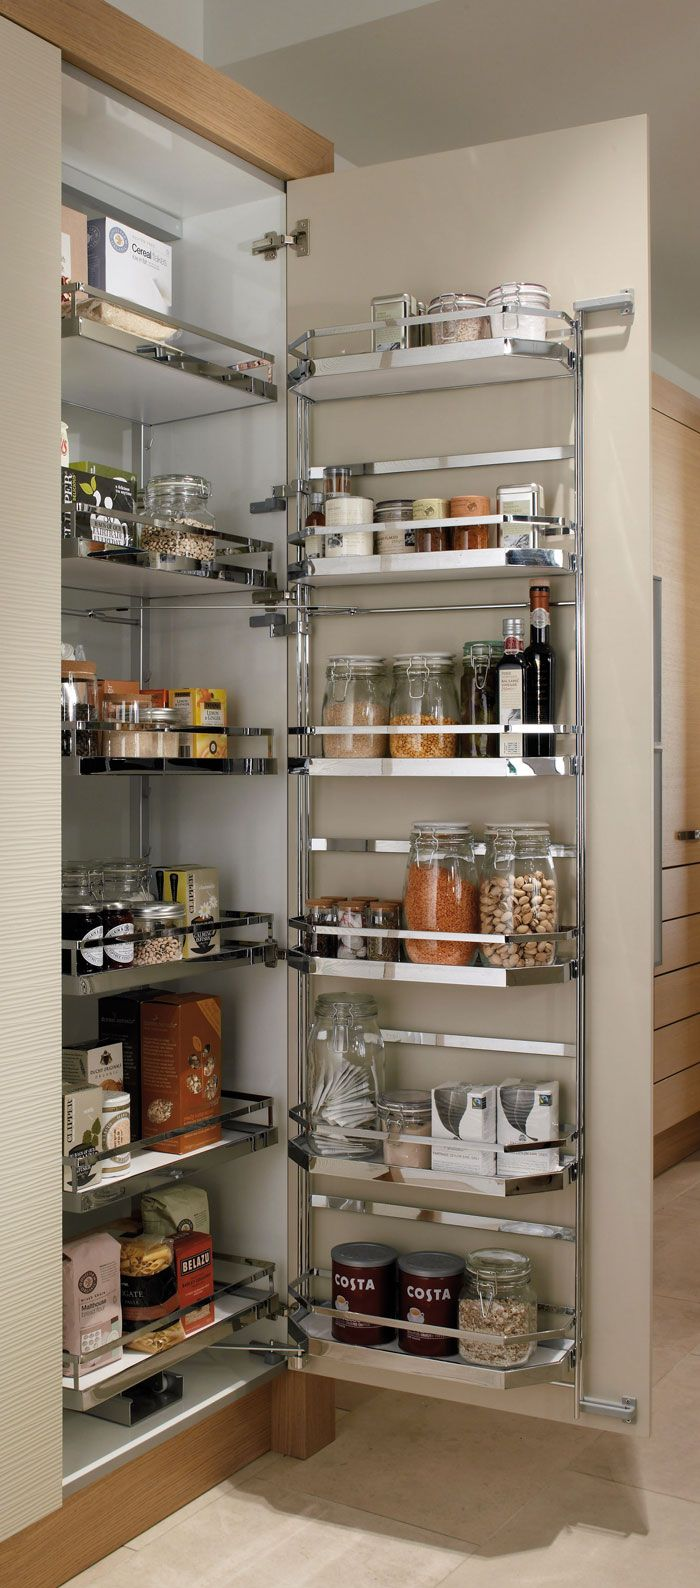 A pull-out larder would be a great use of space too. Picture from http://www.sncollection.co.uk